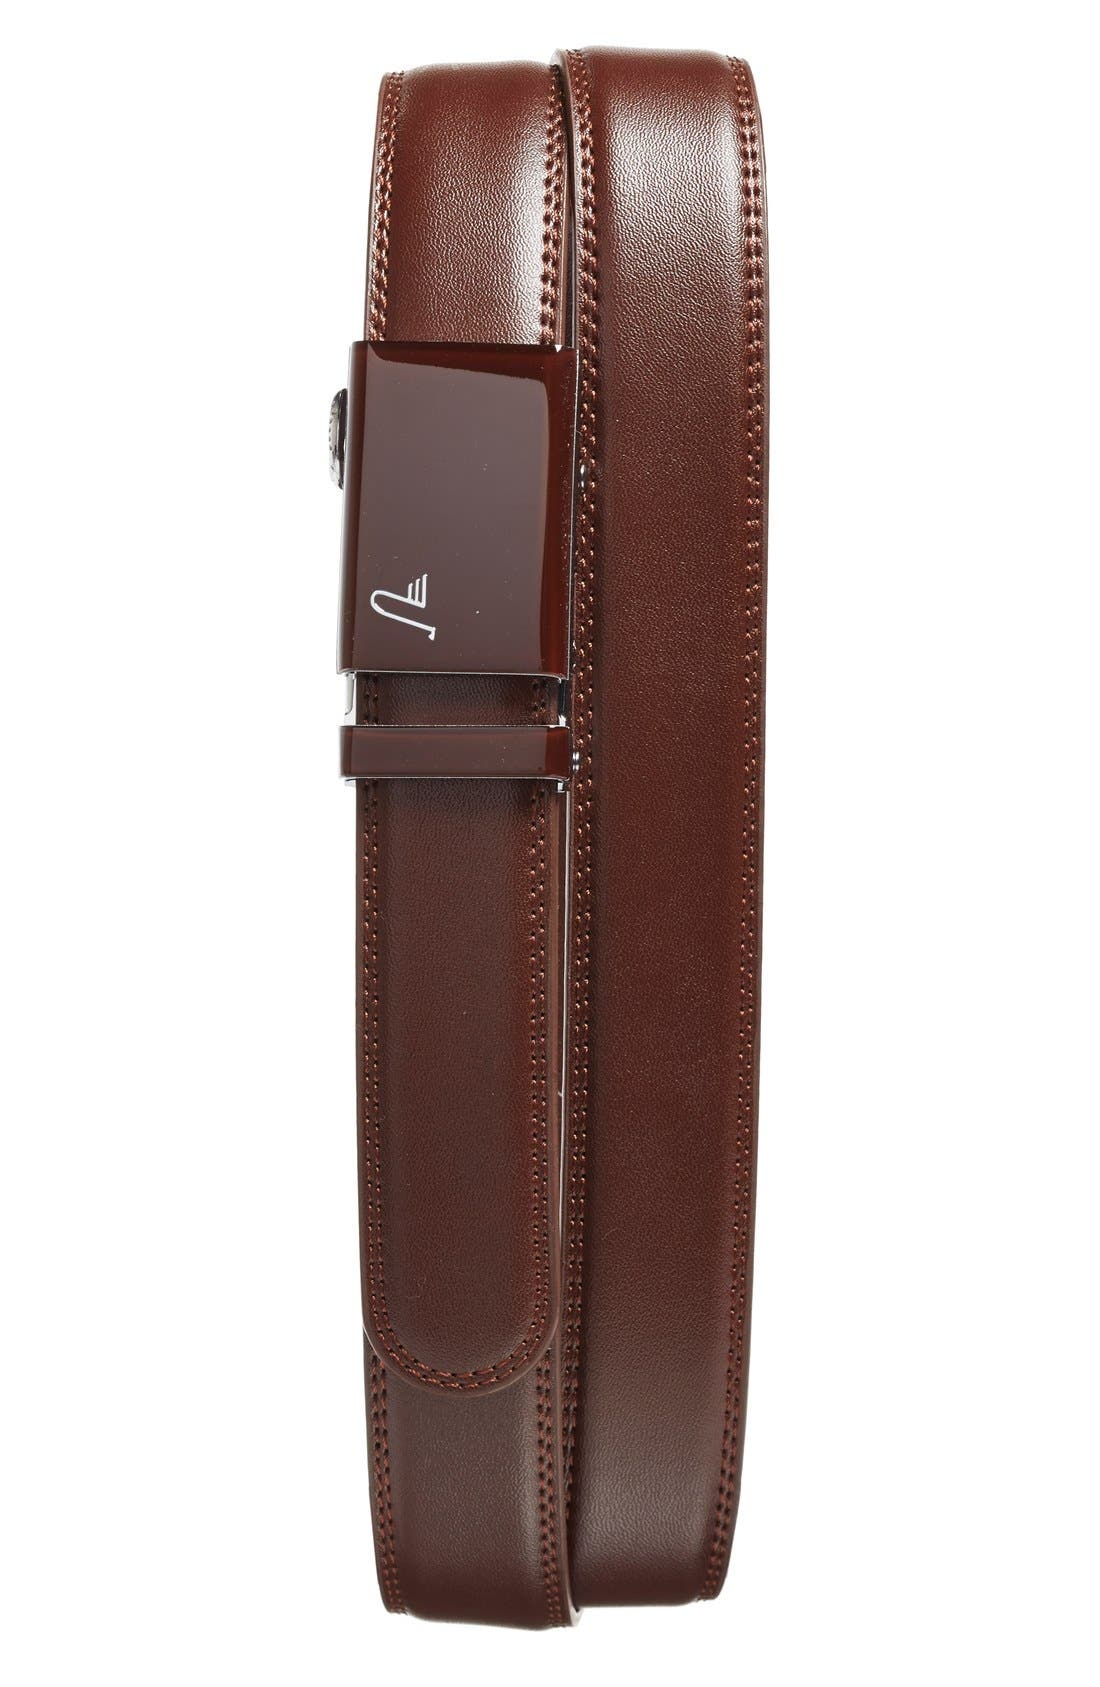 Mission Belt 'Chocolate' Leather Belt